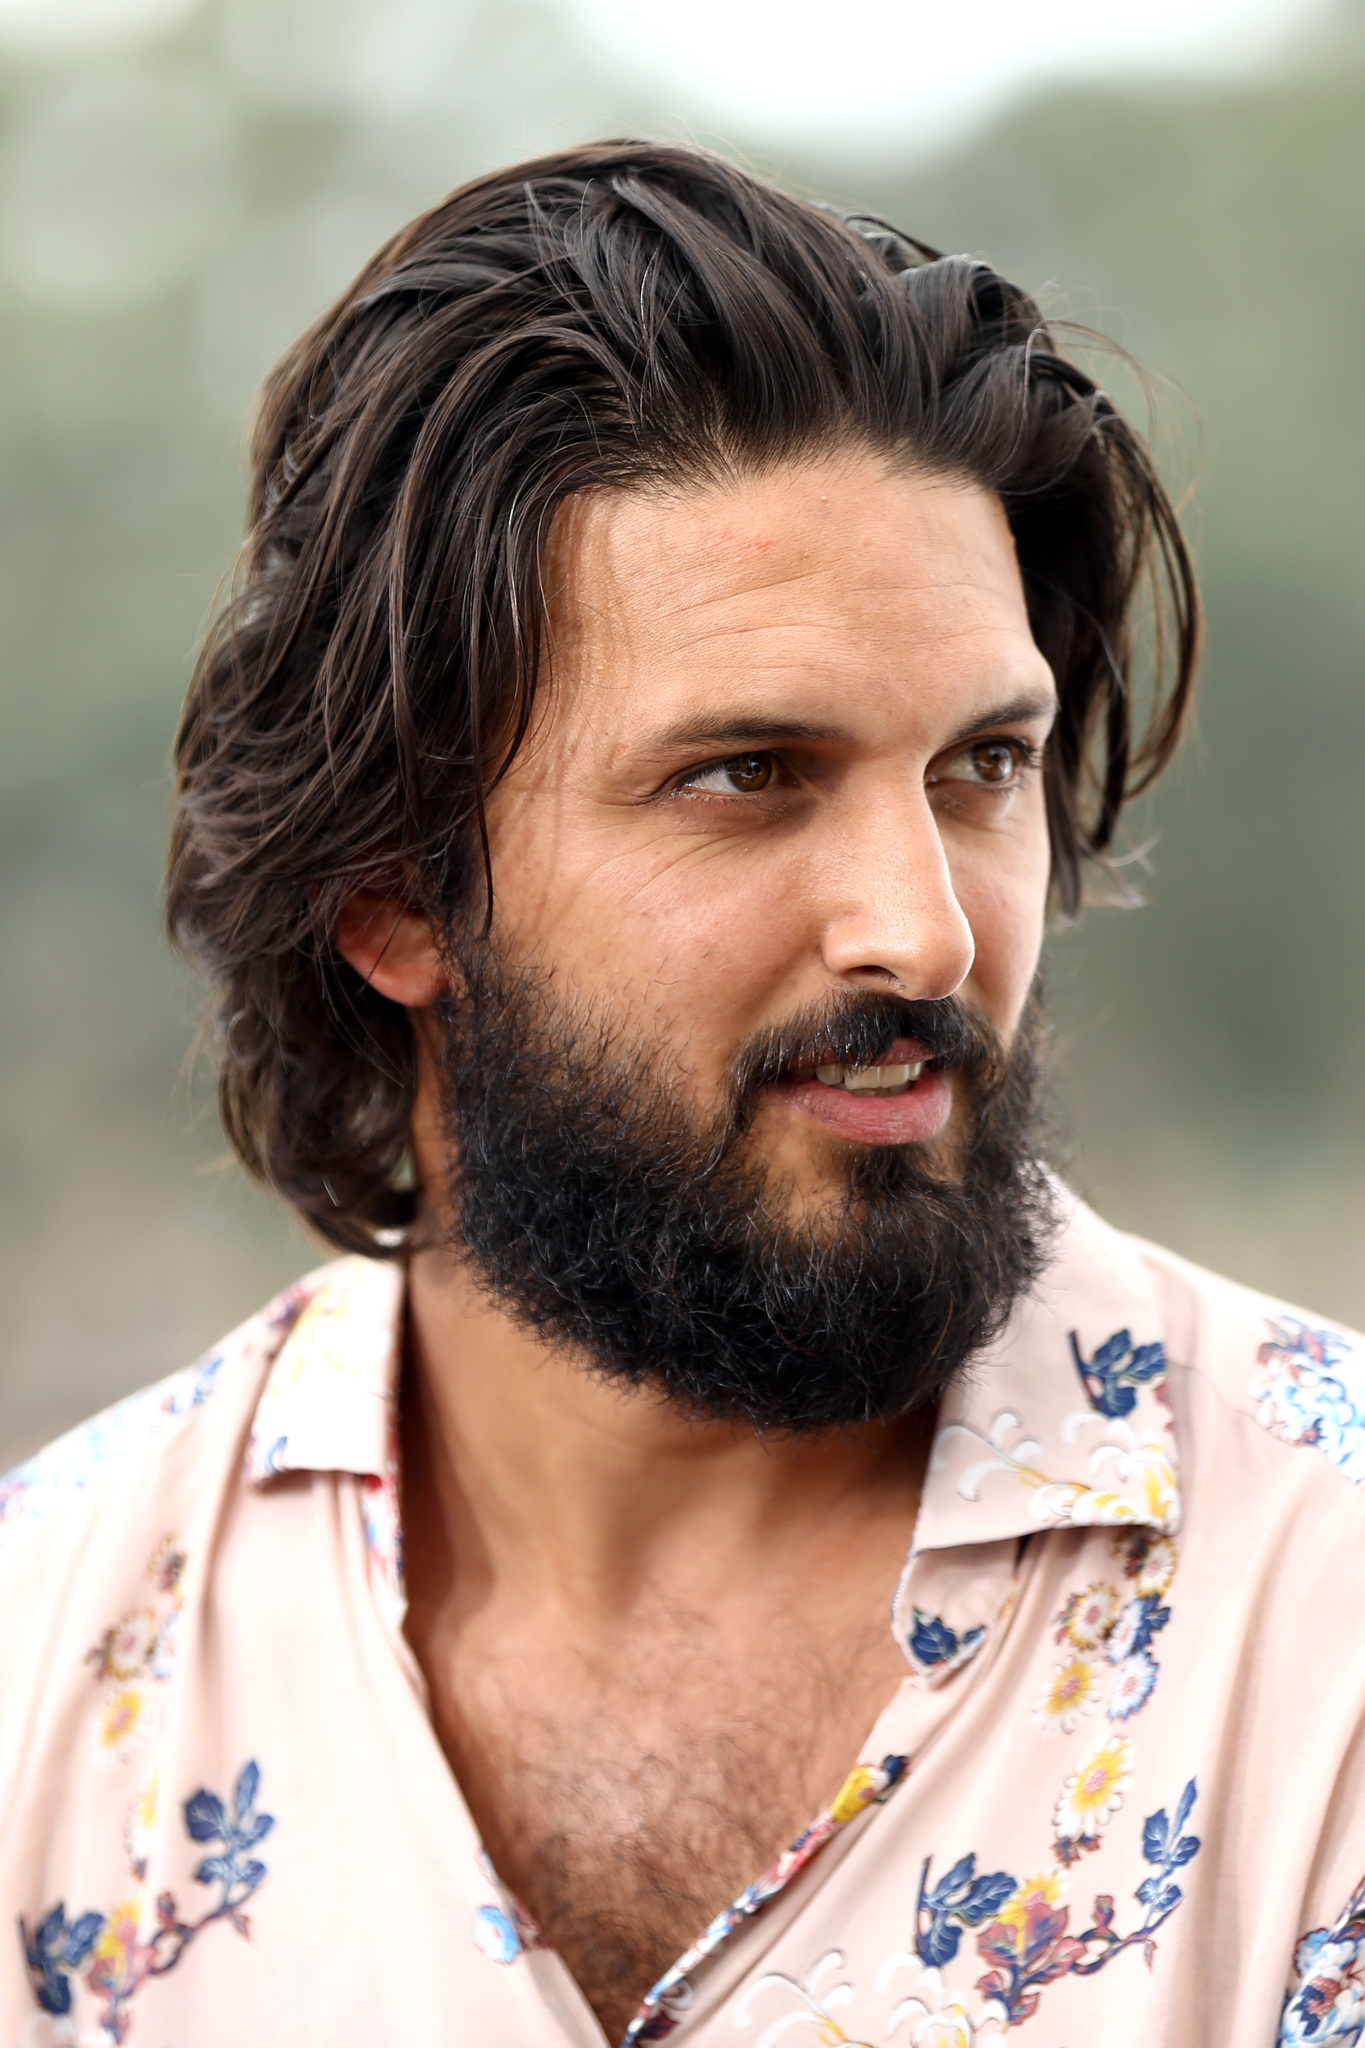 Shazad Latif at an event for Star Trek: Discovery (2017)